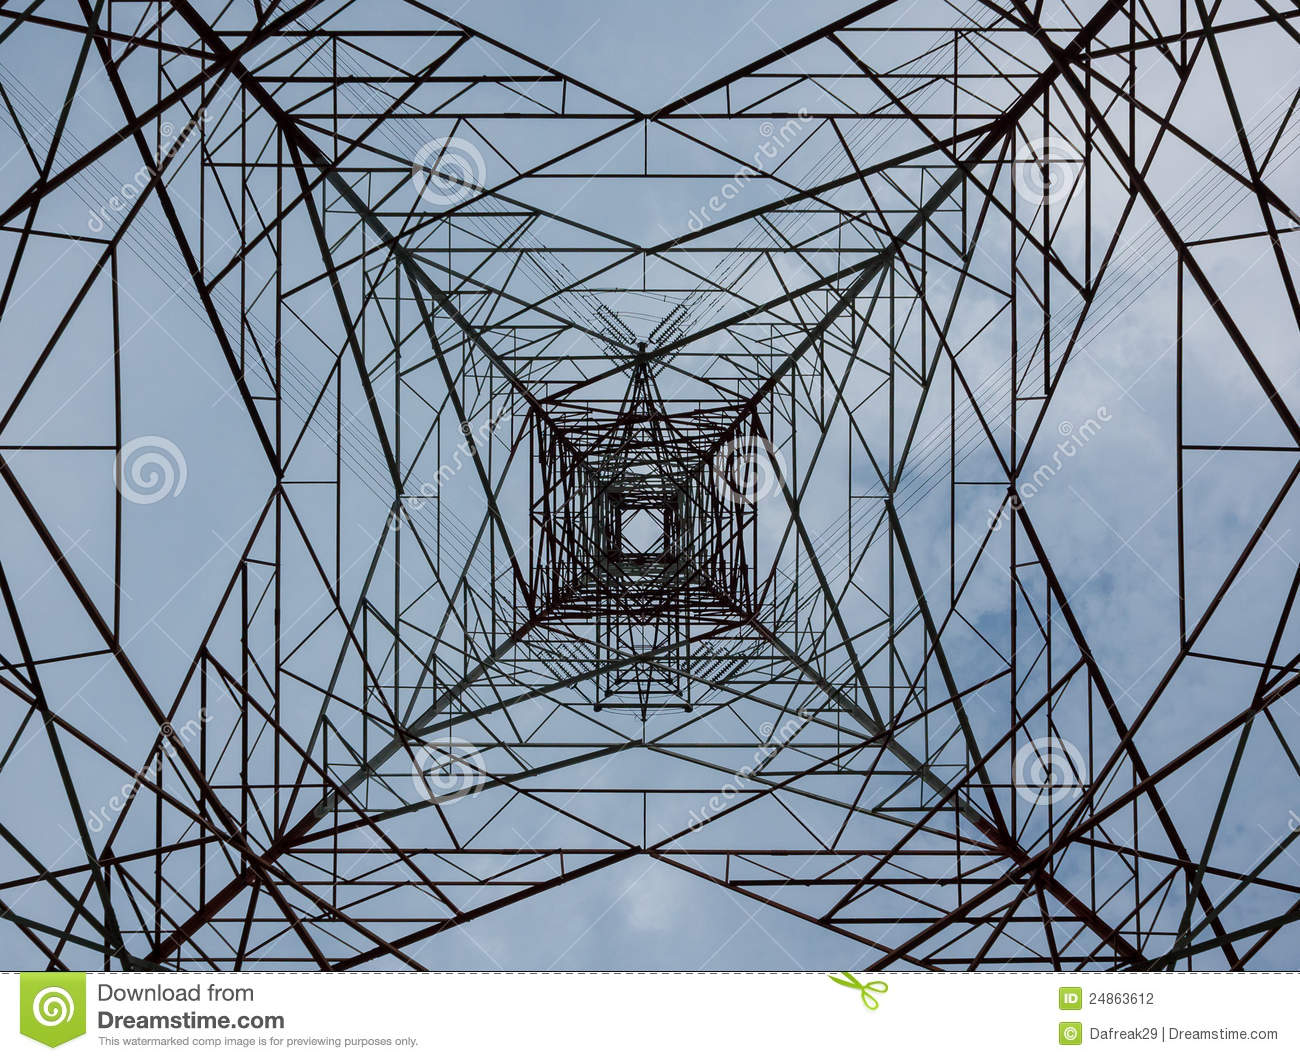 Power Symmetry Stock Photography - Image: 24863612